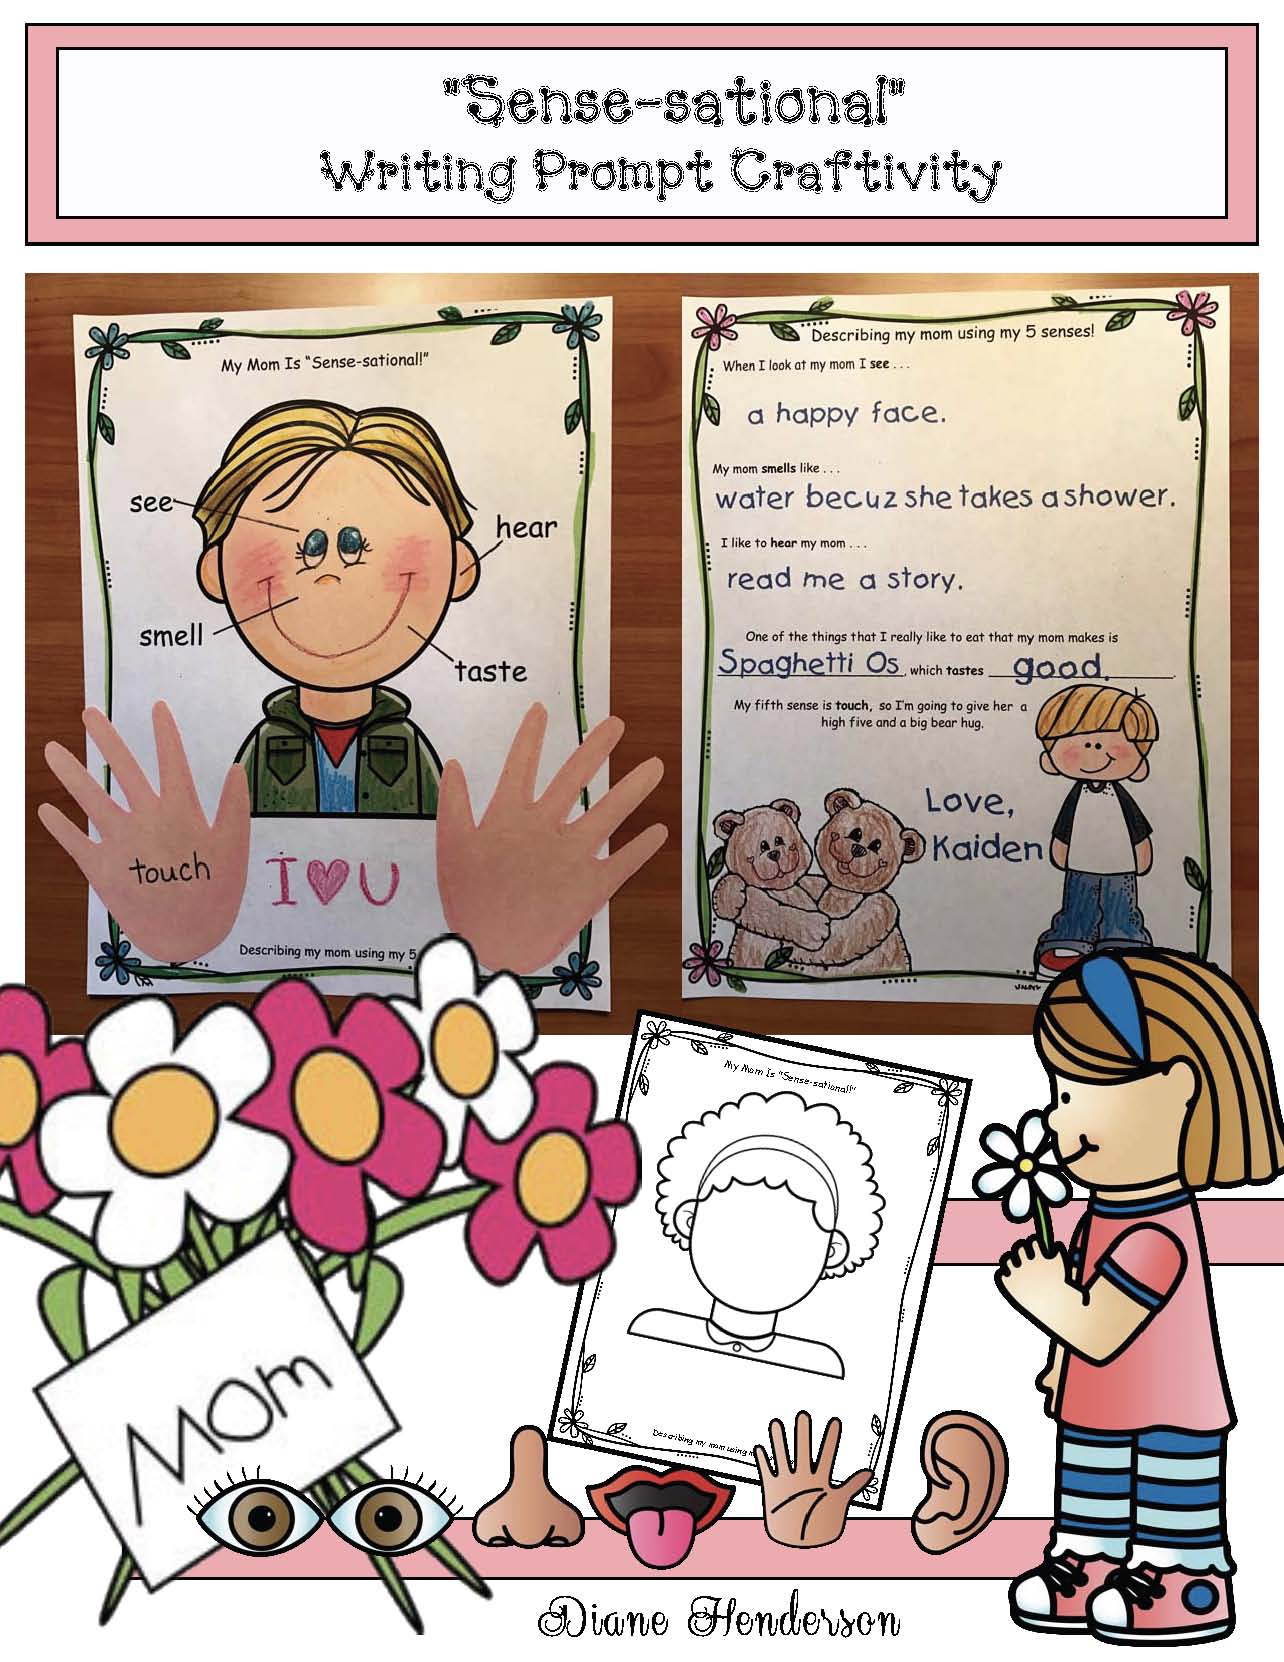 mothers day crafts, mothers day cards, mothers day activities, mothers day writitng prompts, keepsake crafts, hand print crafts, fathers day cards, fathers day crafts, fathers day writing prompts,